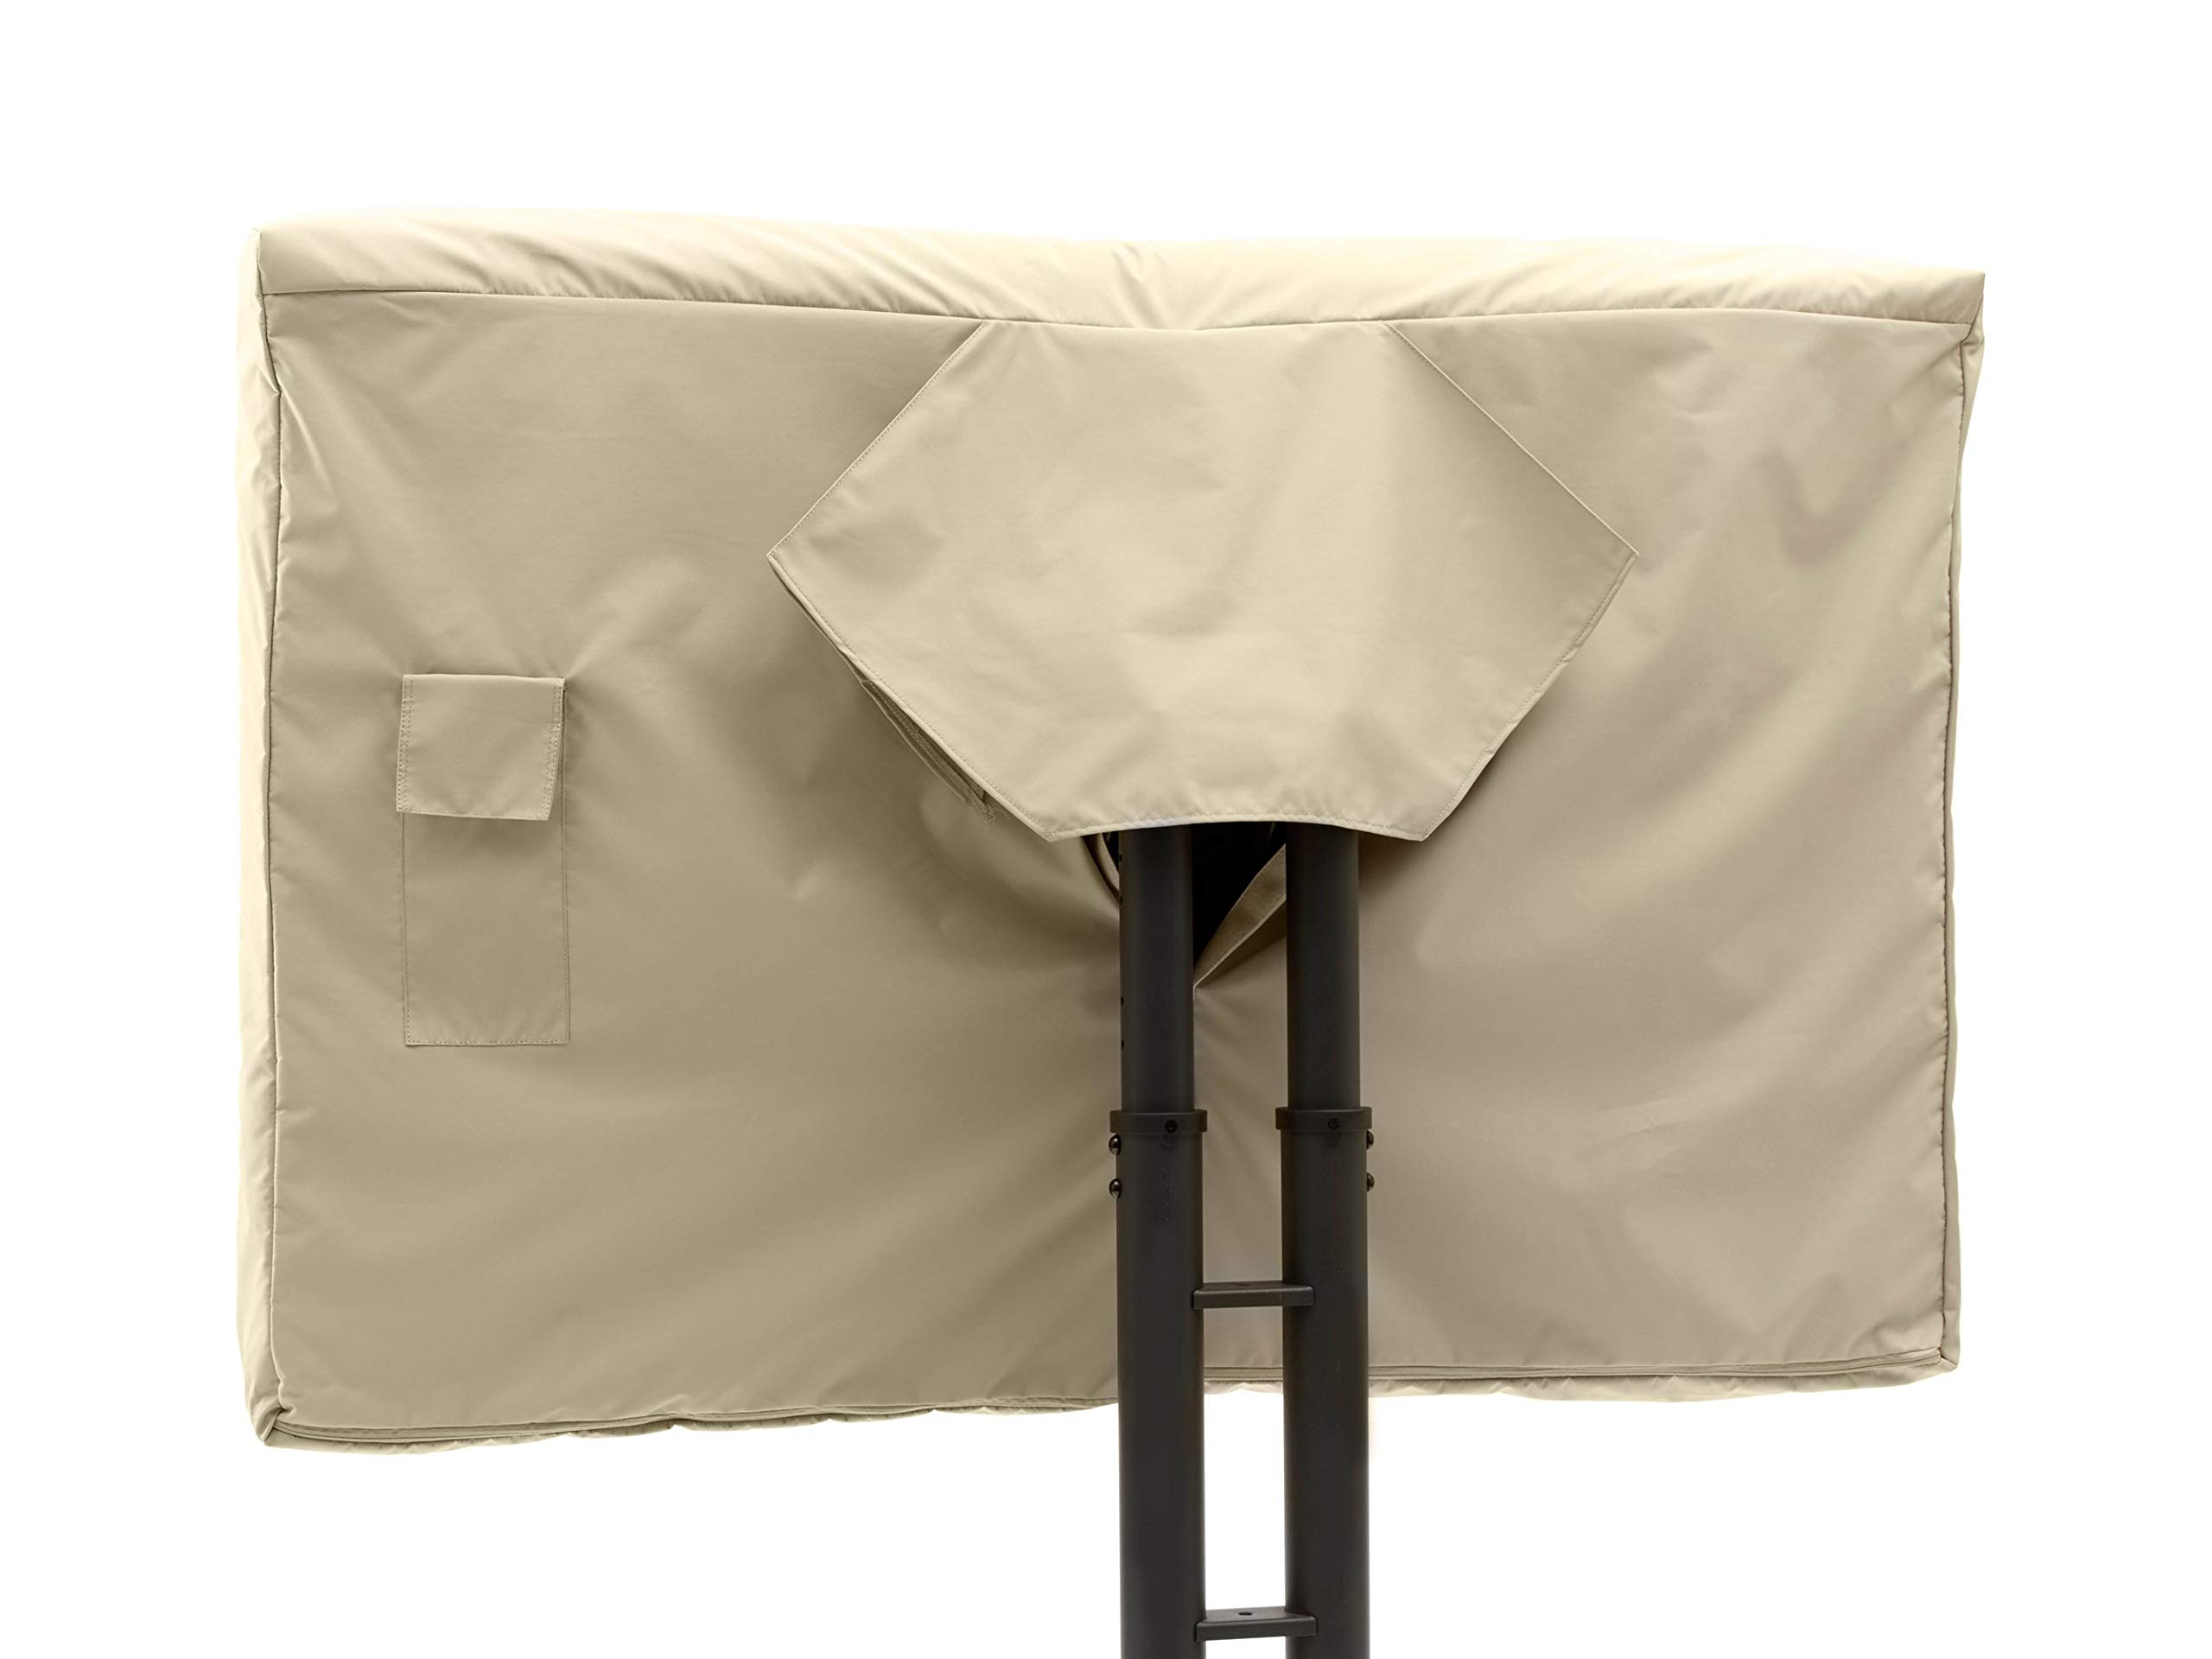 Covermates - Outdoor TV Cover - Fits 70 to 73 Inch TV's - Elite - 300 Denier Stock-Dyed Polyester - Full Coverage - Front Interior Fleece Lining - 3 YR Warranty - Water Resistant - Khaki